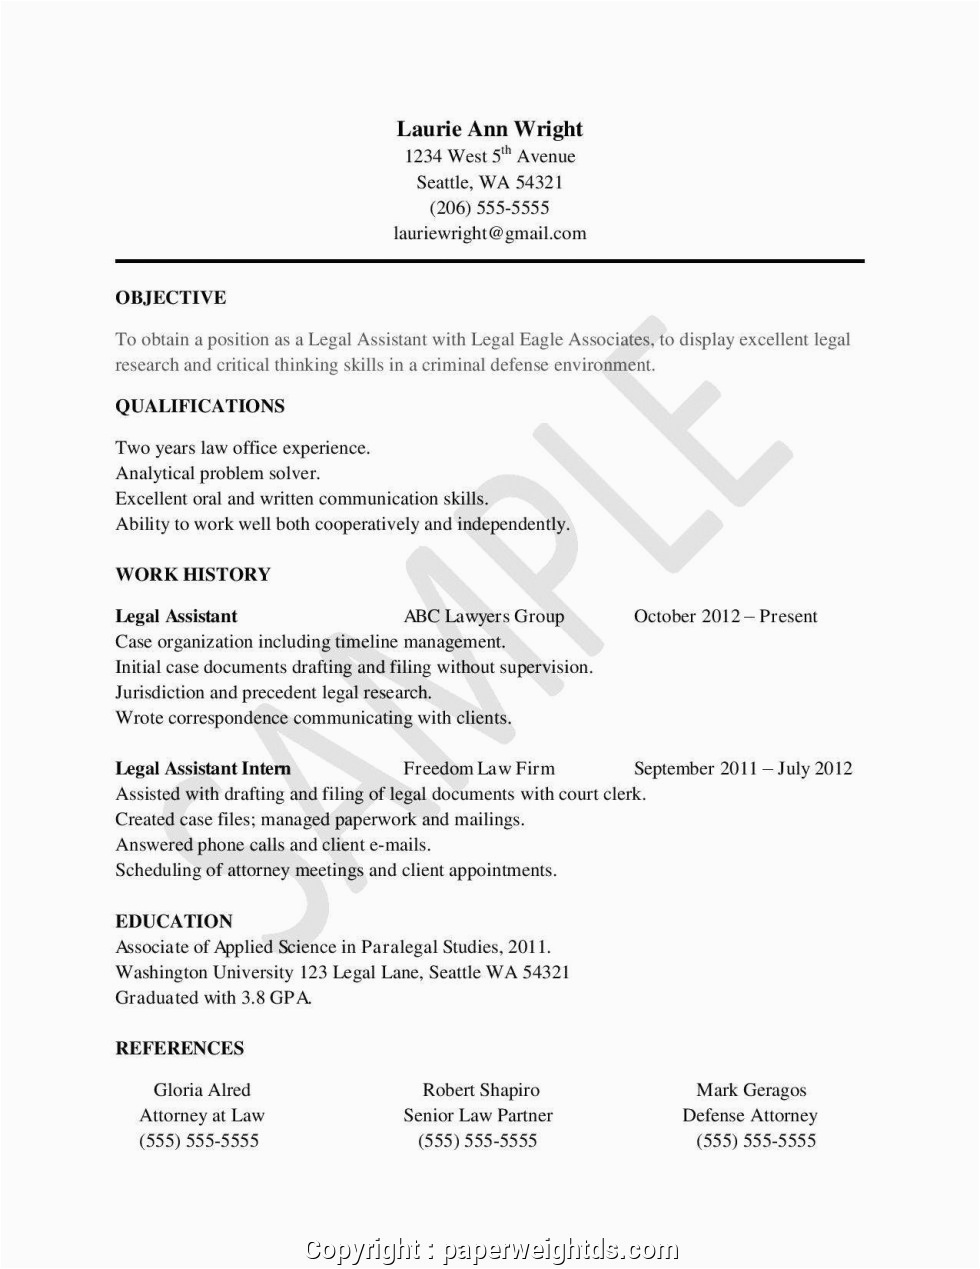 Resume Sample for Sales Lady without Experience New Case Manager Resume No Experience Sample Resume